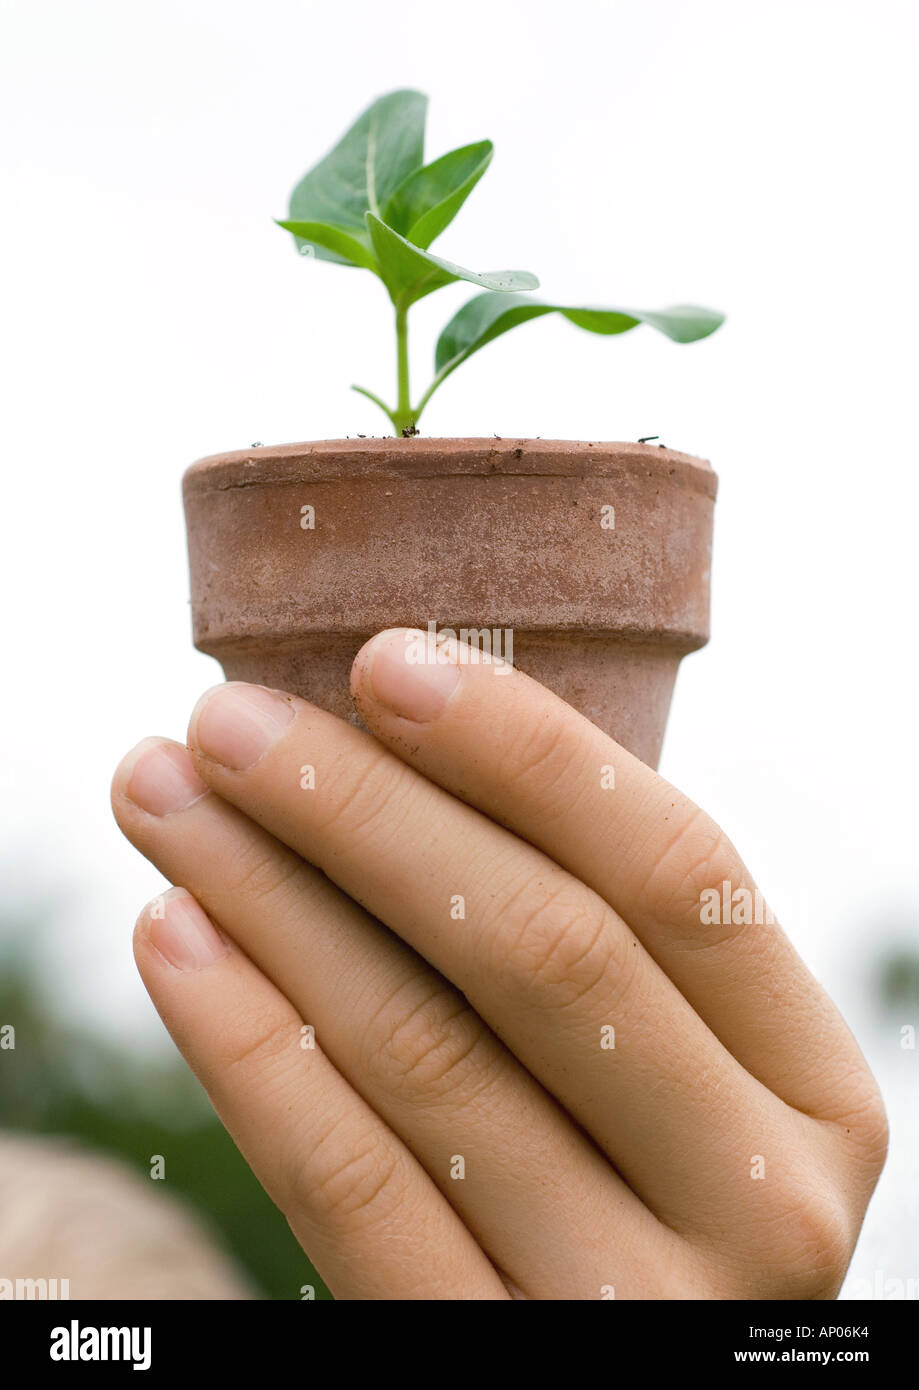 Hand holding potted seedling - Stock Image